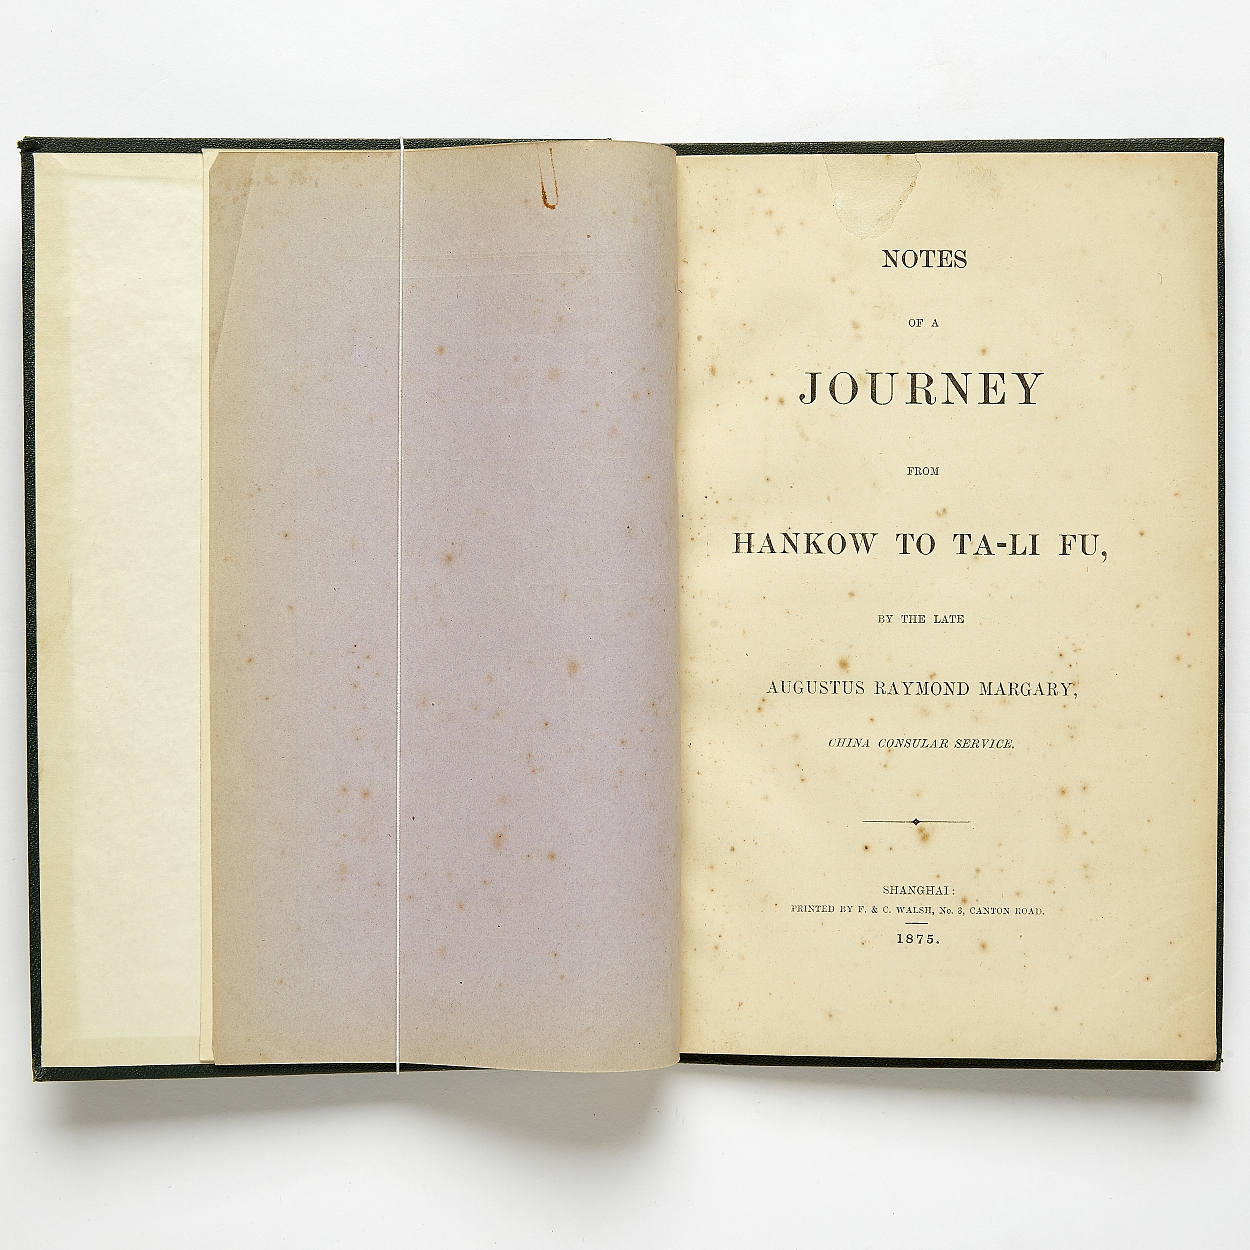 Notes of a journey from Hankow to Ta-li fu 1875